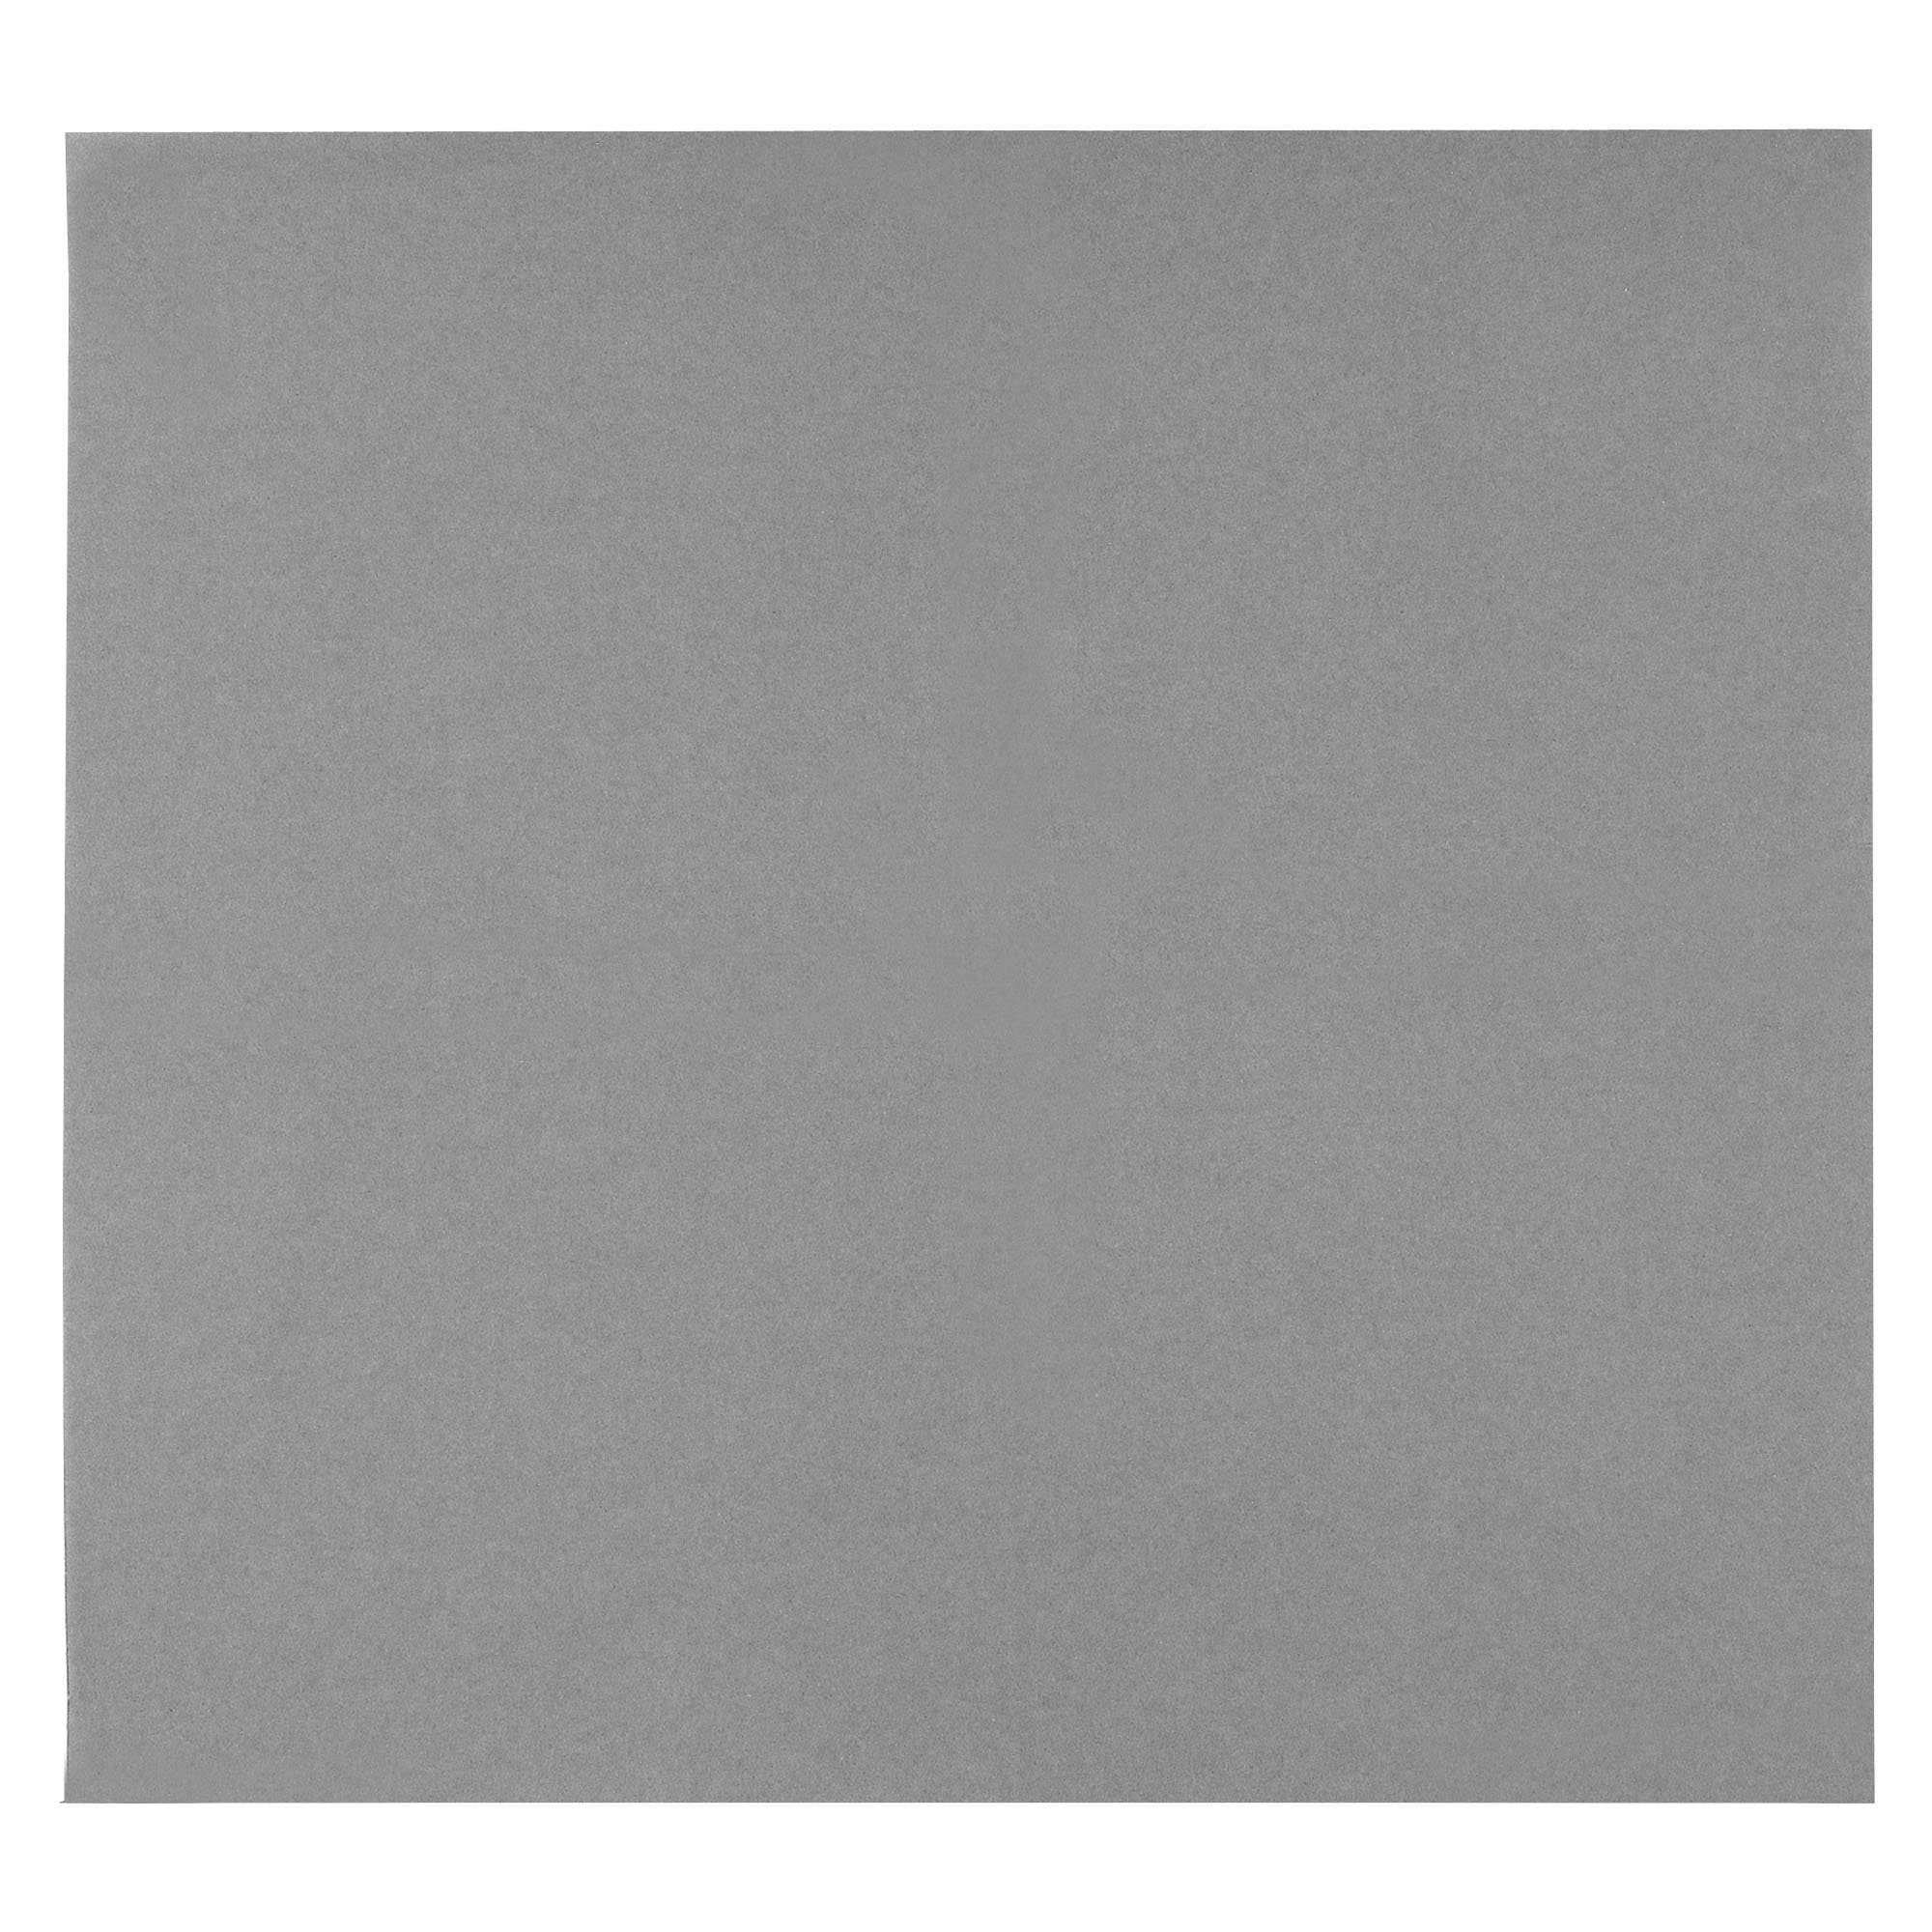 """ITOS365 Colored Napkins – Gray – Decorative Cloth Like & Disposable Napkins for Wedding Airlaid Paper Dinner Napkins – Soft, Absorbent & Durable – 16""""x16"""" – Set of 50"""